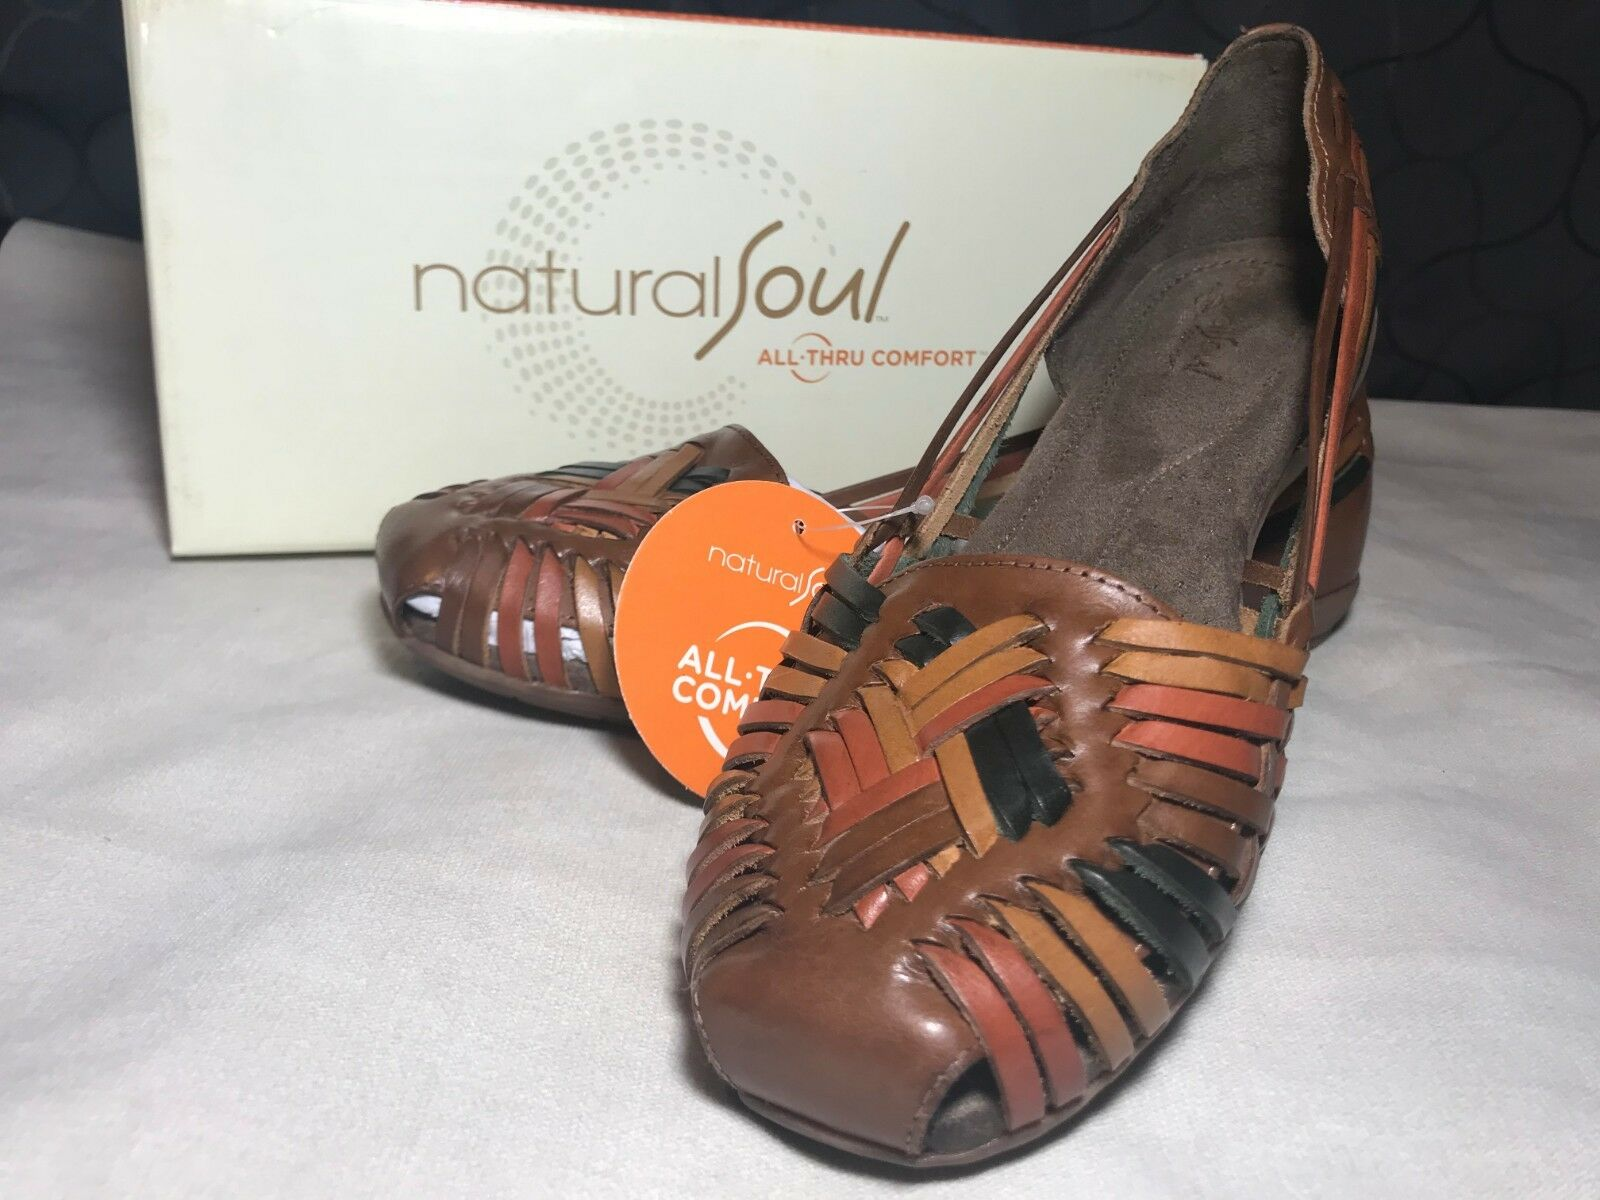 Natural Soul by Naturalizer Grandeur Multi Brown Pelle Woven Loafers Flats 9.5